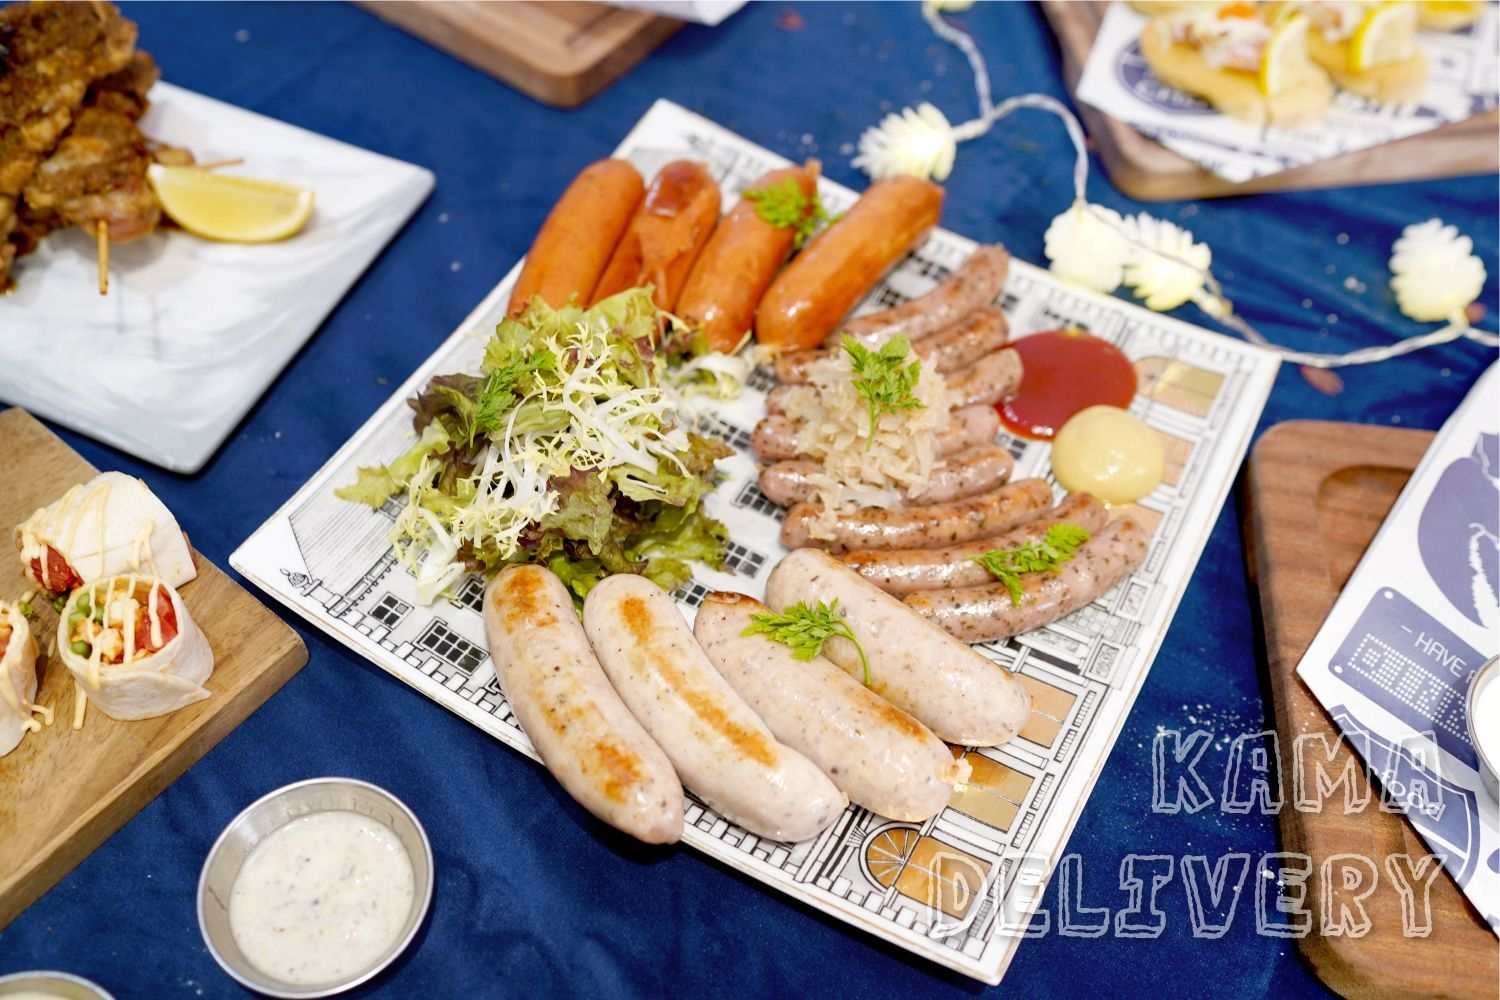 Party Room到會|美食到會外賣推介|Kamadelivery Catering Service